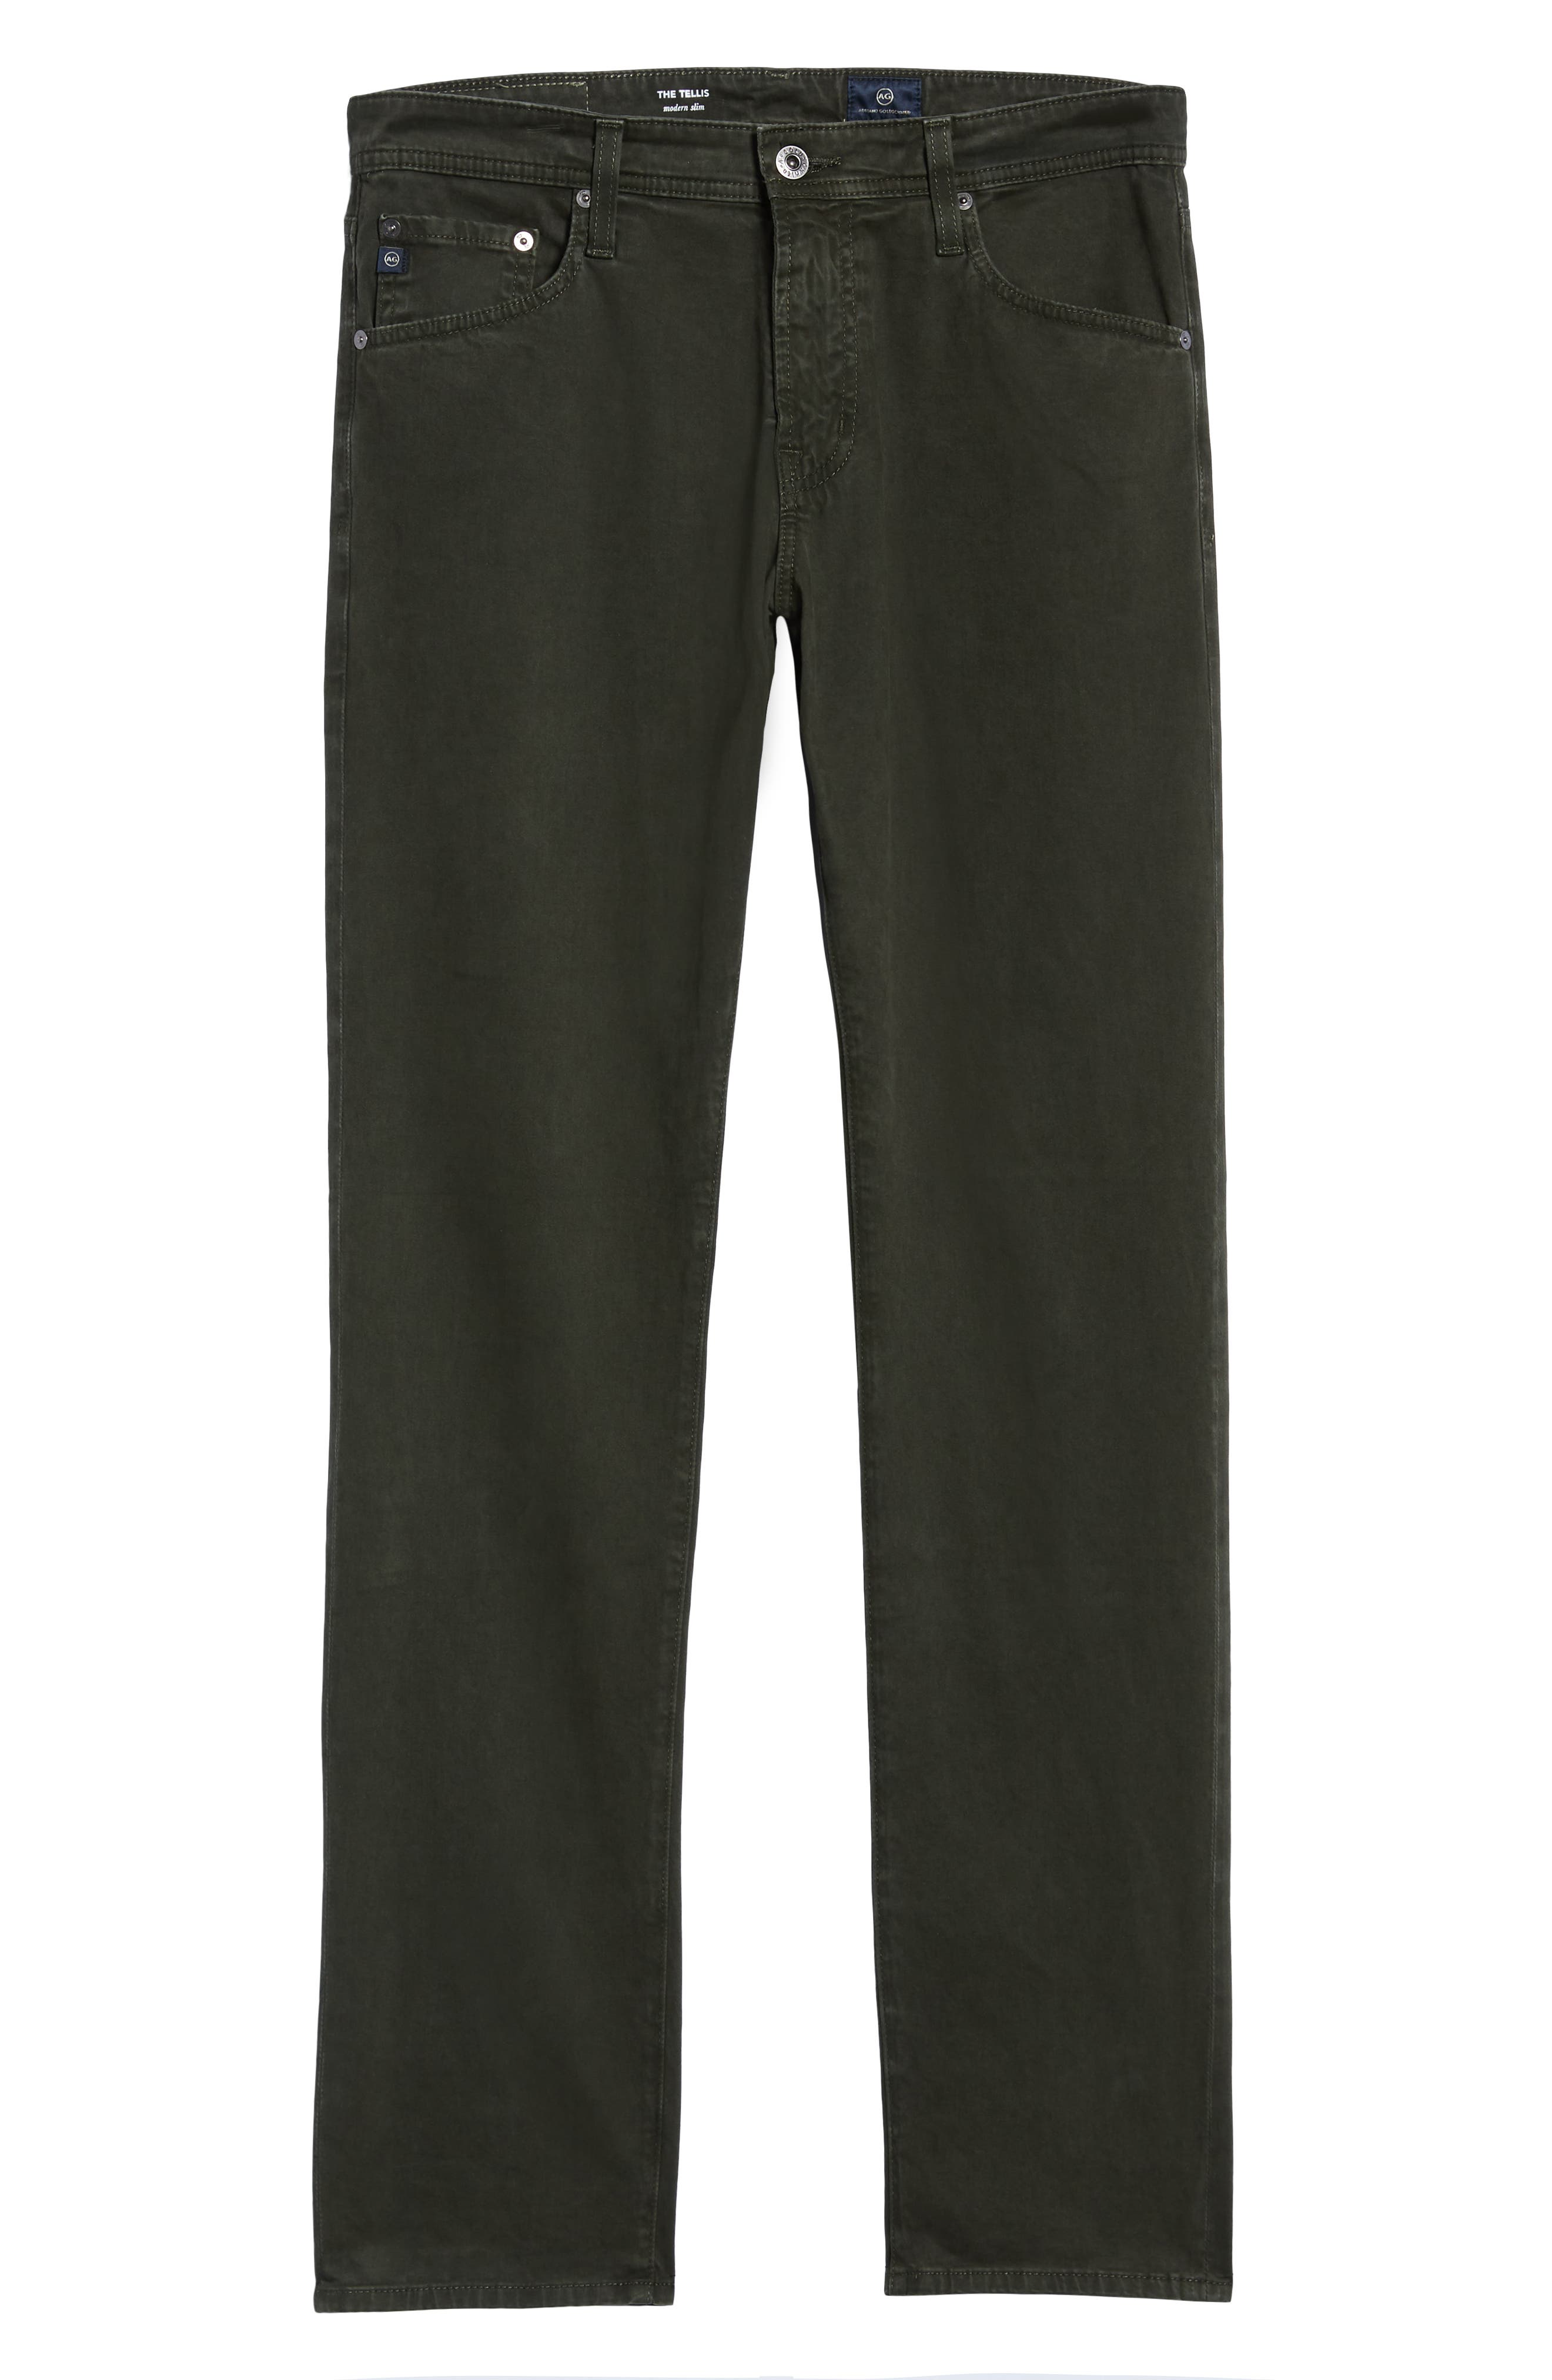 Tellis SUD Modern Slim Stretch Twill Pants,                             Alternate thumbnail 6, color,                             320